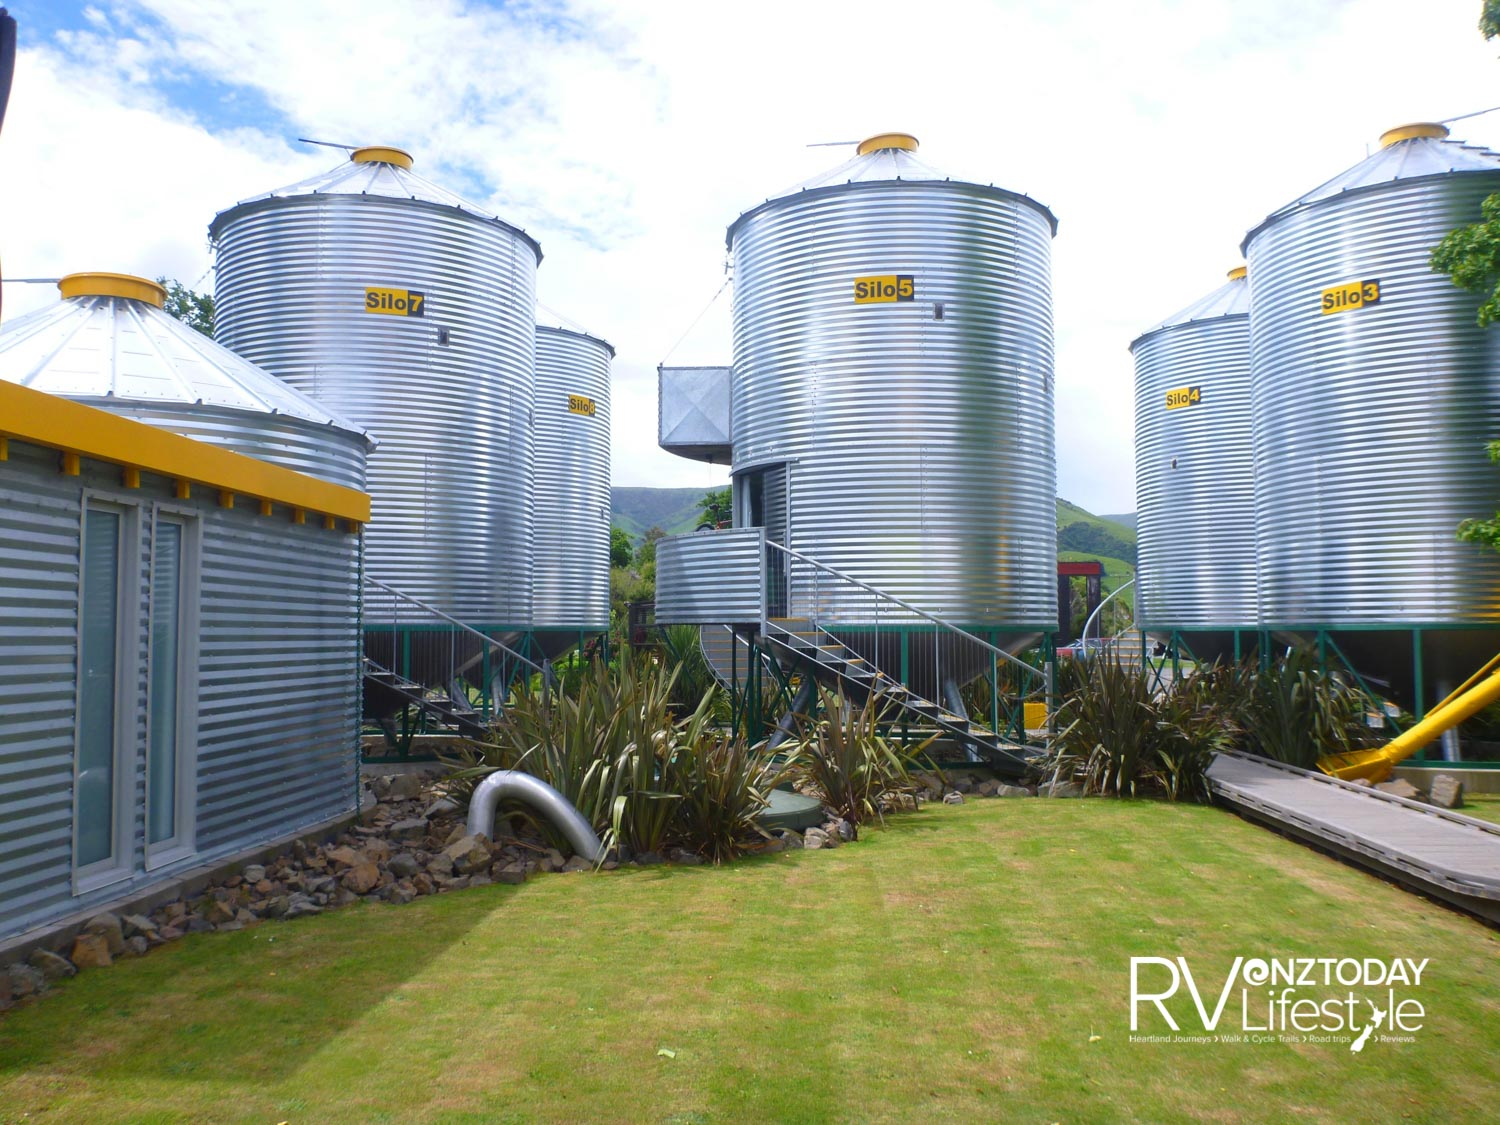 The quirky grain silos of Little River's SiloStay